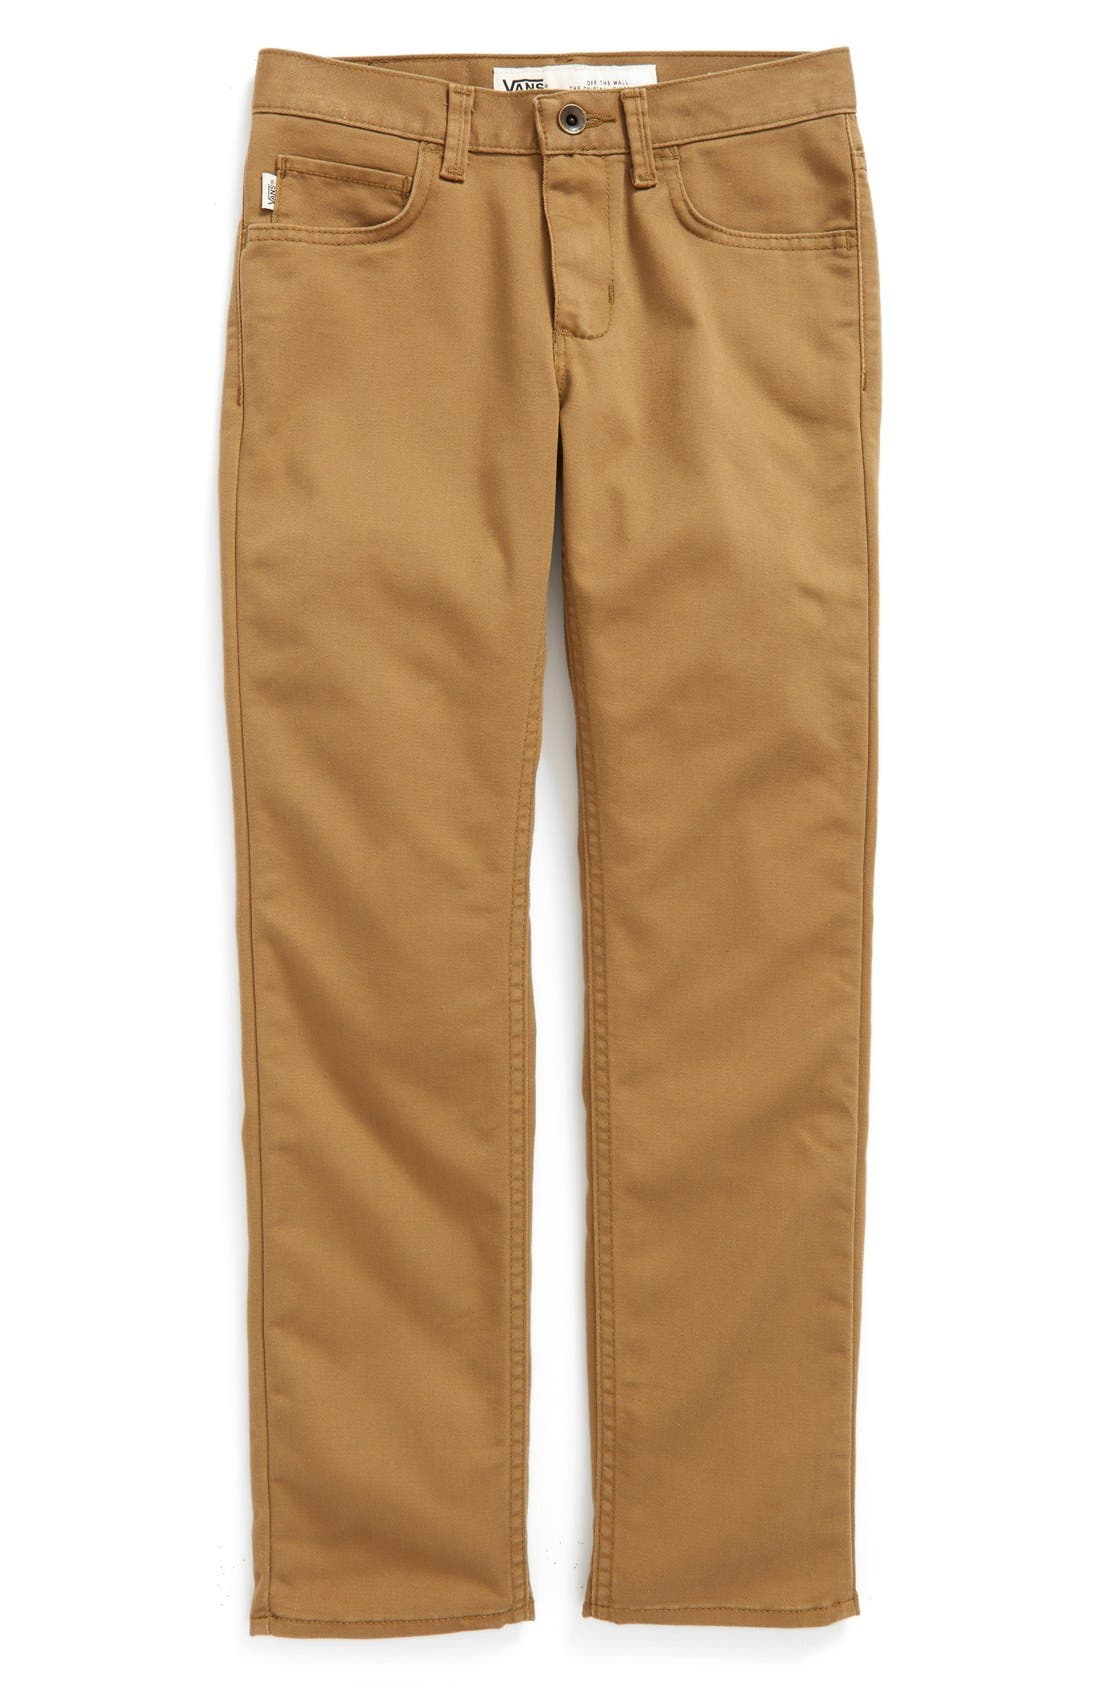 'V56 Standard AV Covina' Pants,                             Main thumbnail 1, color,                             Dirt